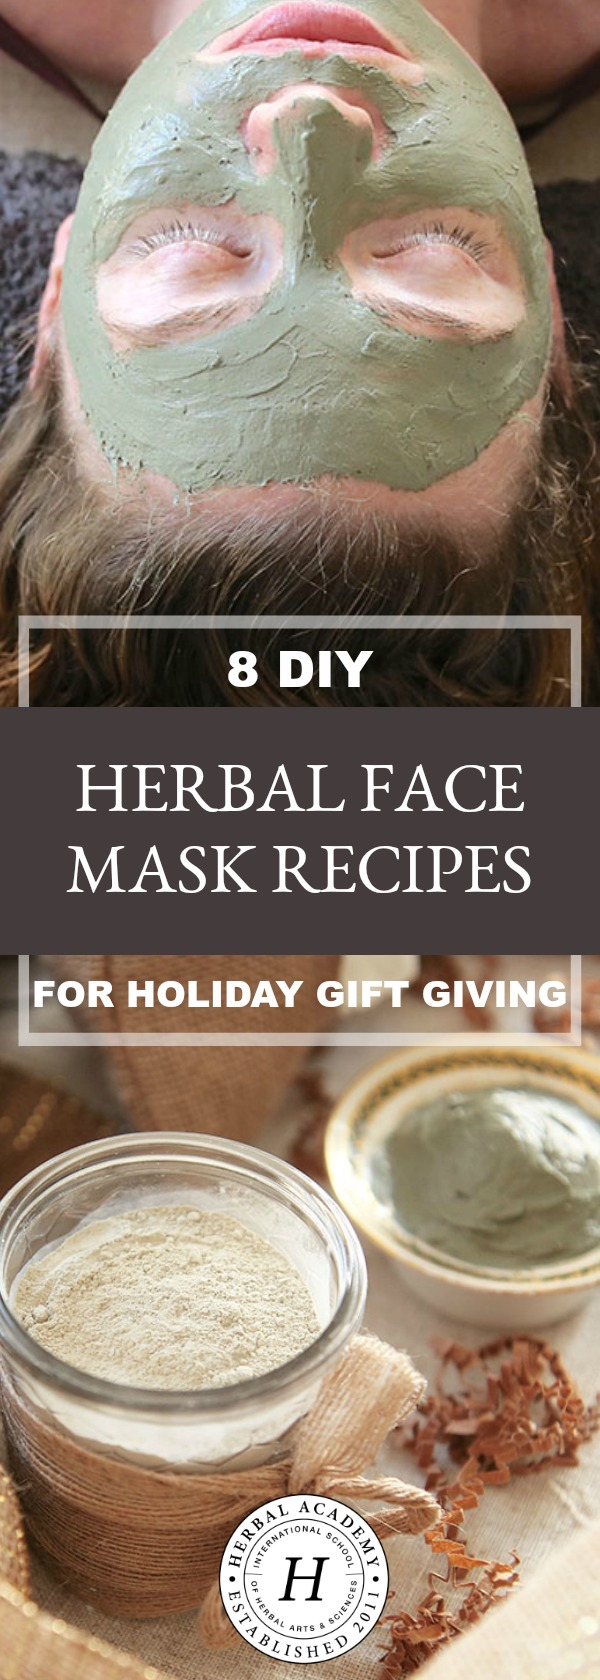 8 DIY Herbal Face Mask Recipes for Holiday Gift Giving | Herbal Academy | Looking for gift ideas for this holiday season? Check out these 8 DIY herbal face mask recipes that friends and family are sure to love!